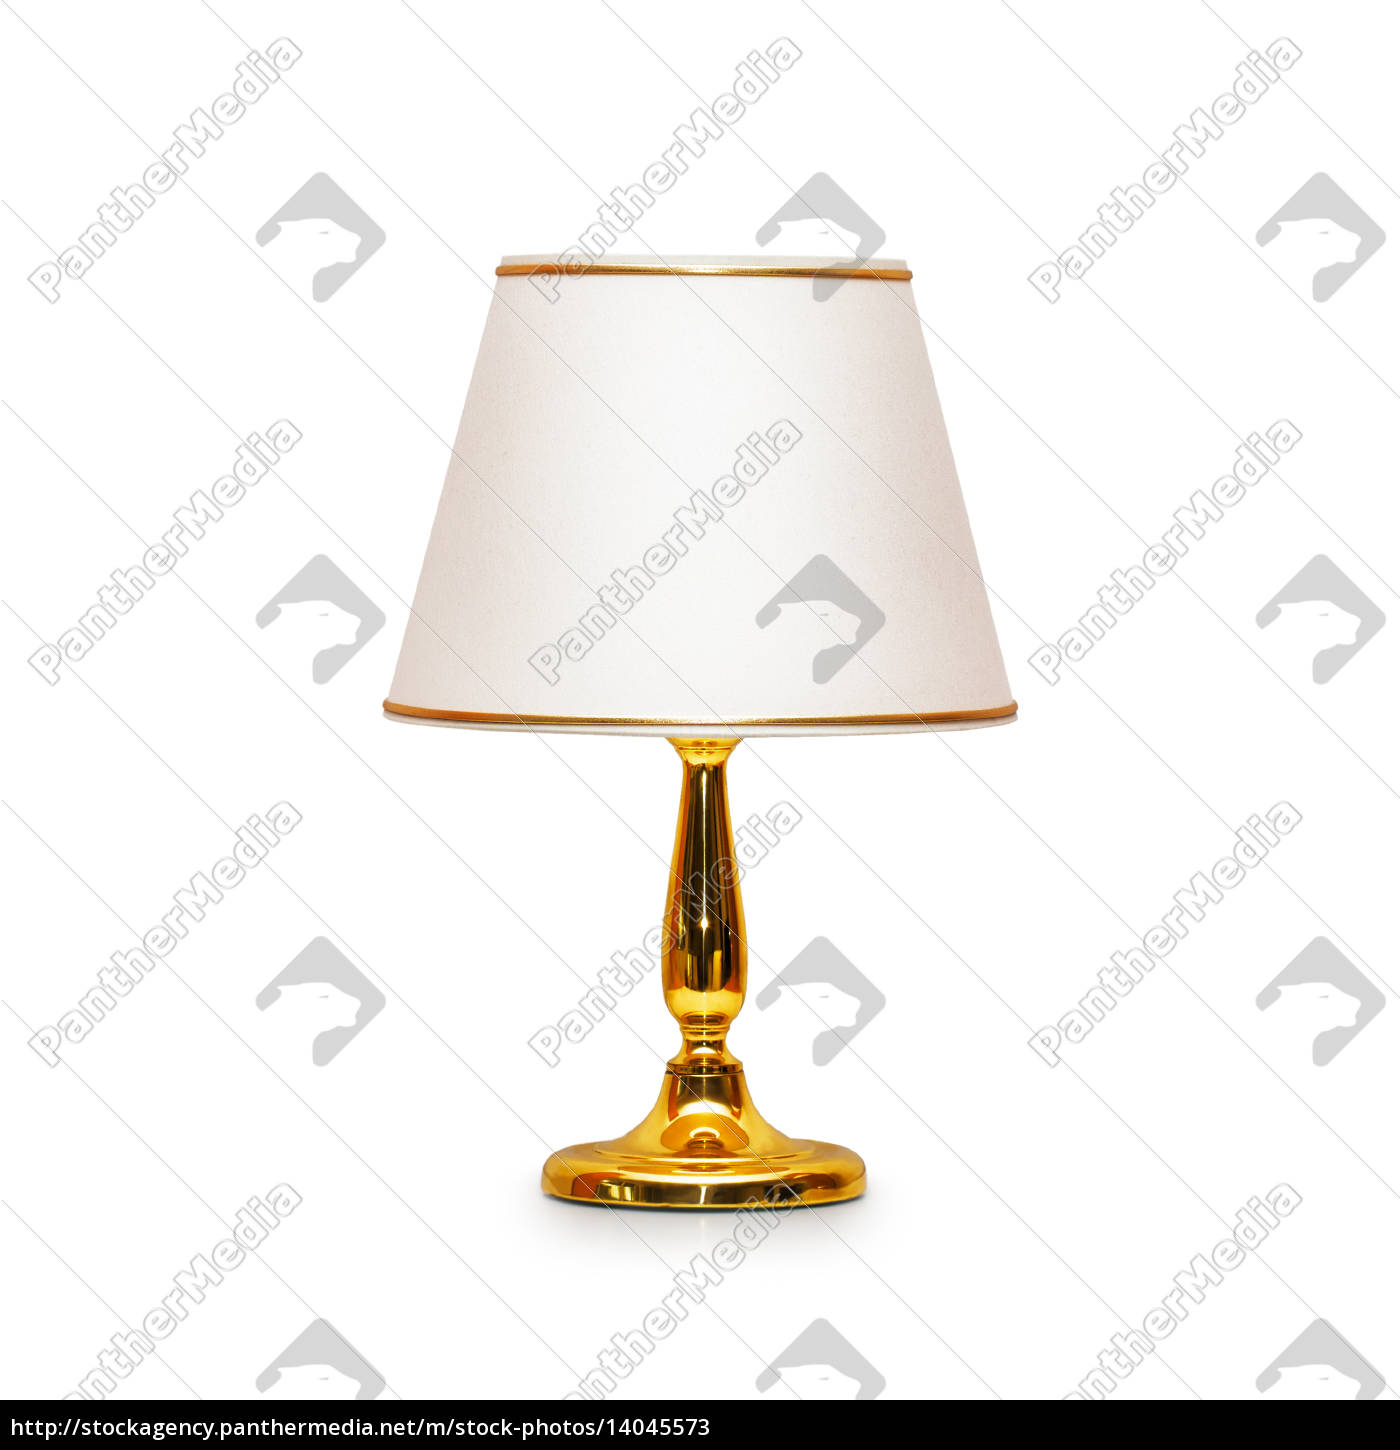 table, lamp - 14045573